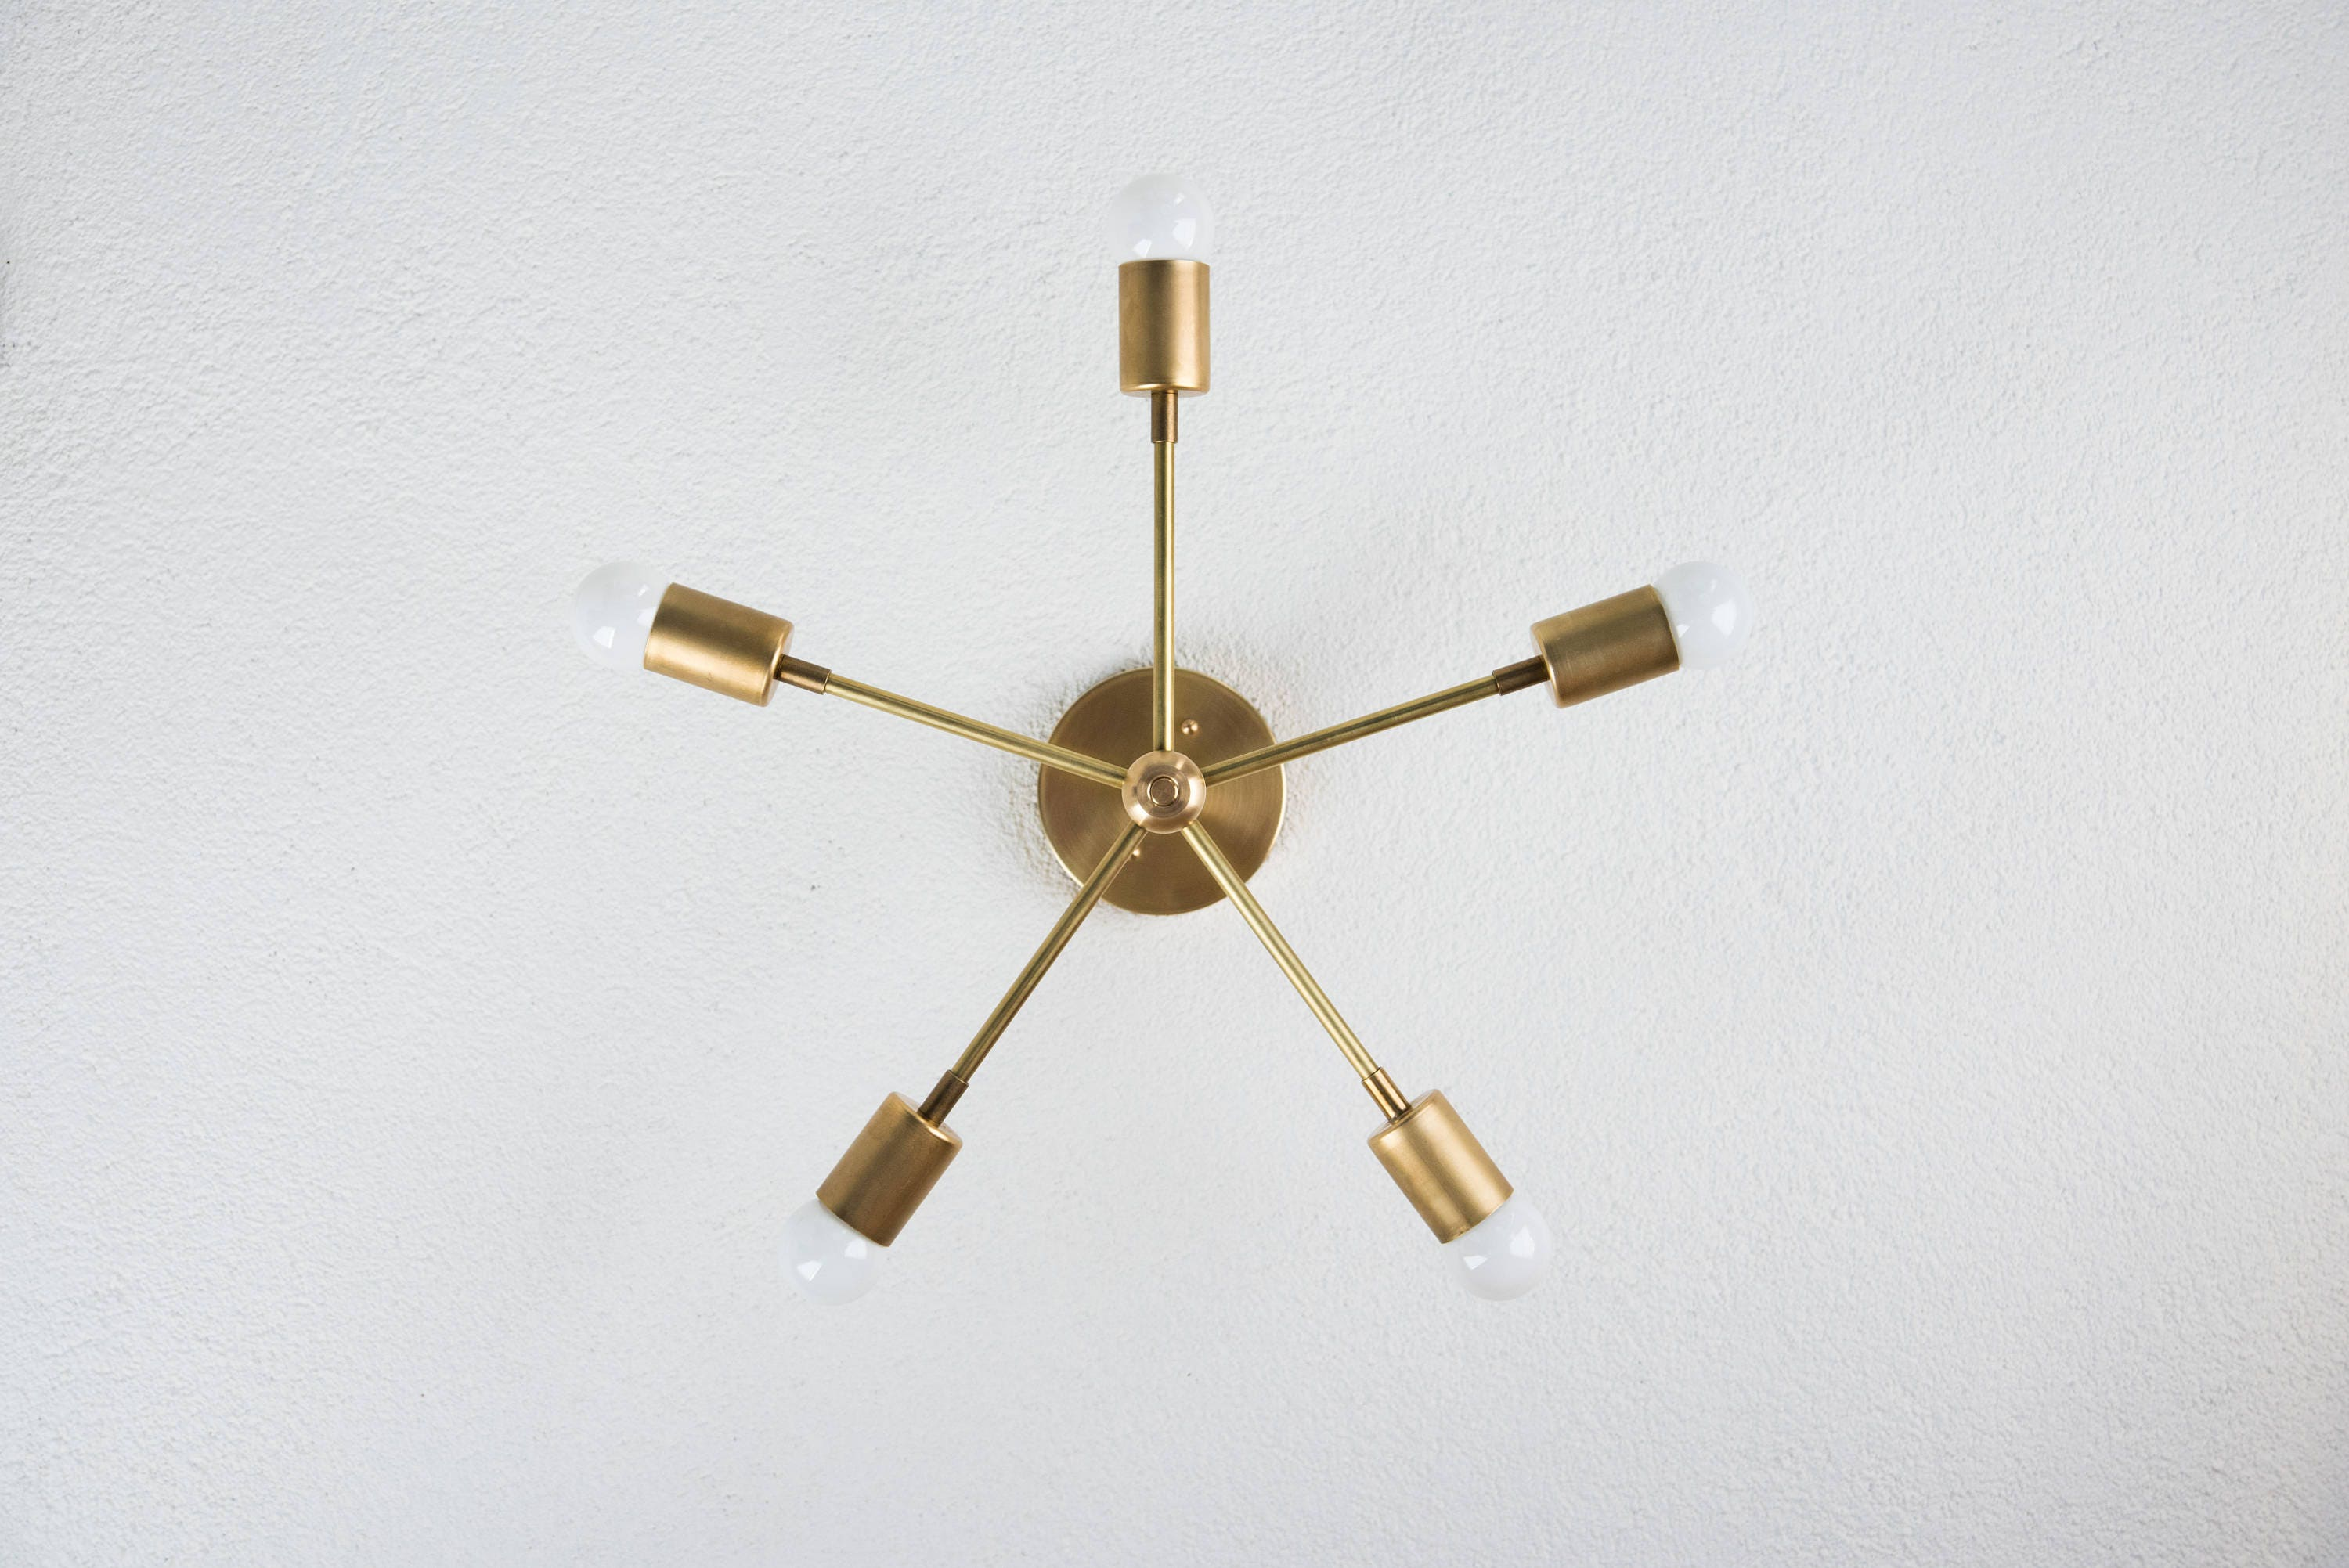 In stock modern chandelier gold five 5 arm pinwheel bulb brass modern chandelier gold five 5 arm pinwheel bulb brass sputnik mid century semi flush industrial light ul listed arubaitofo Image collections